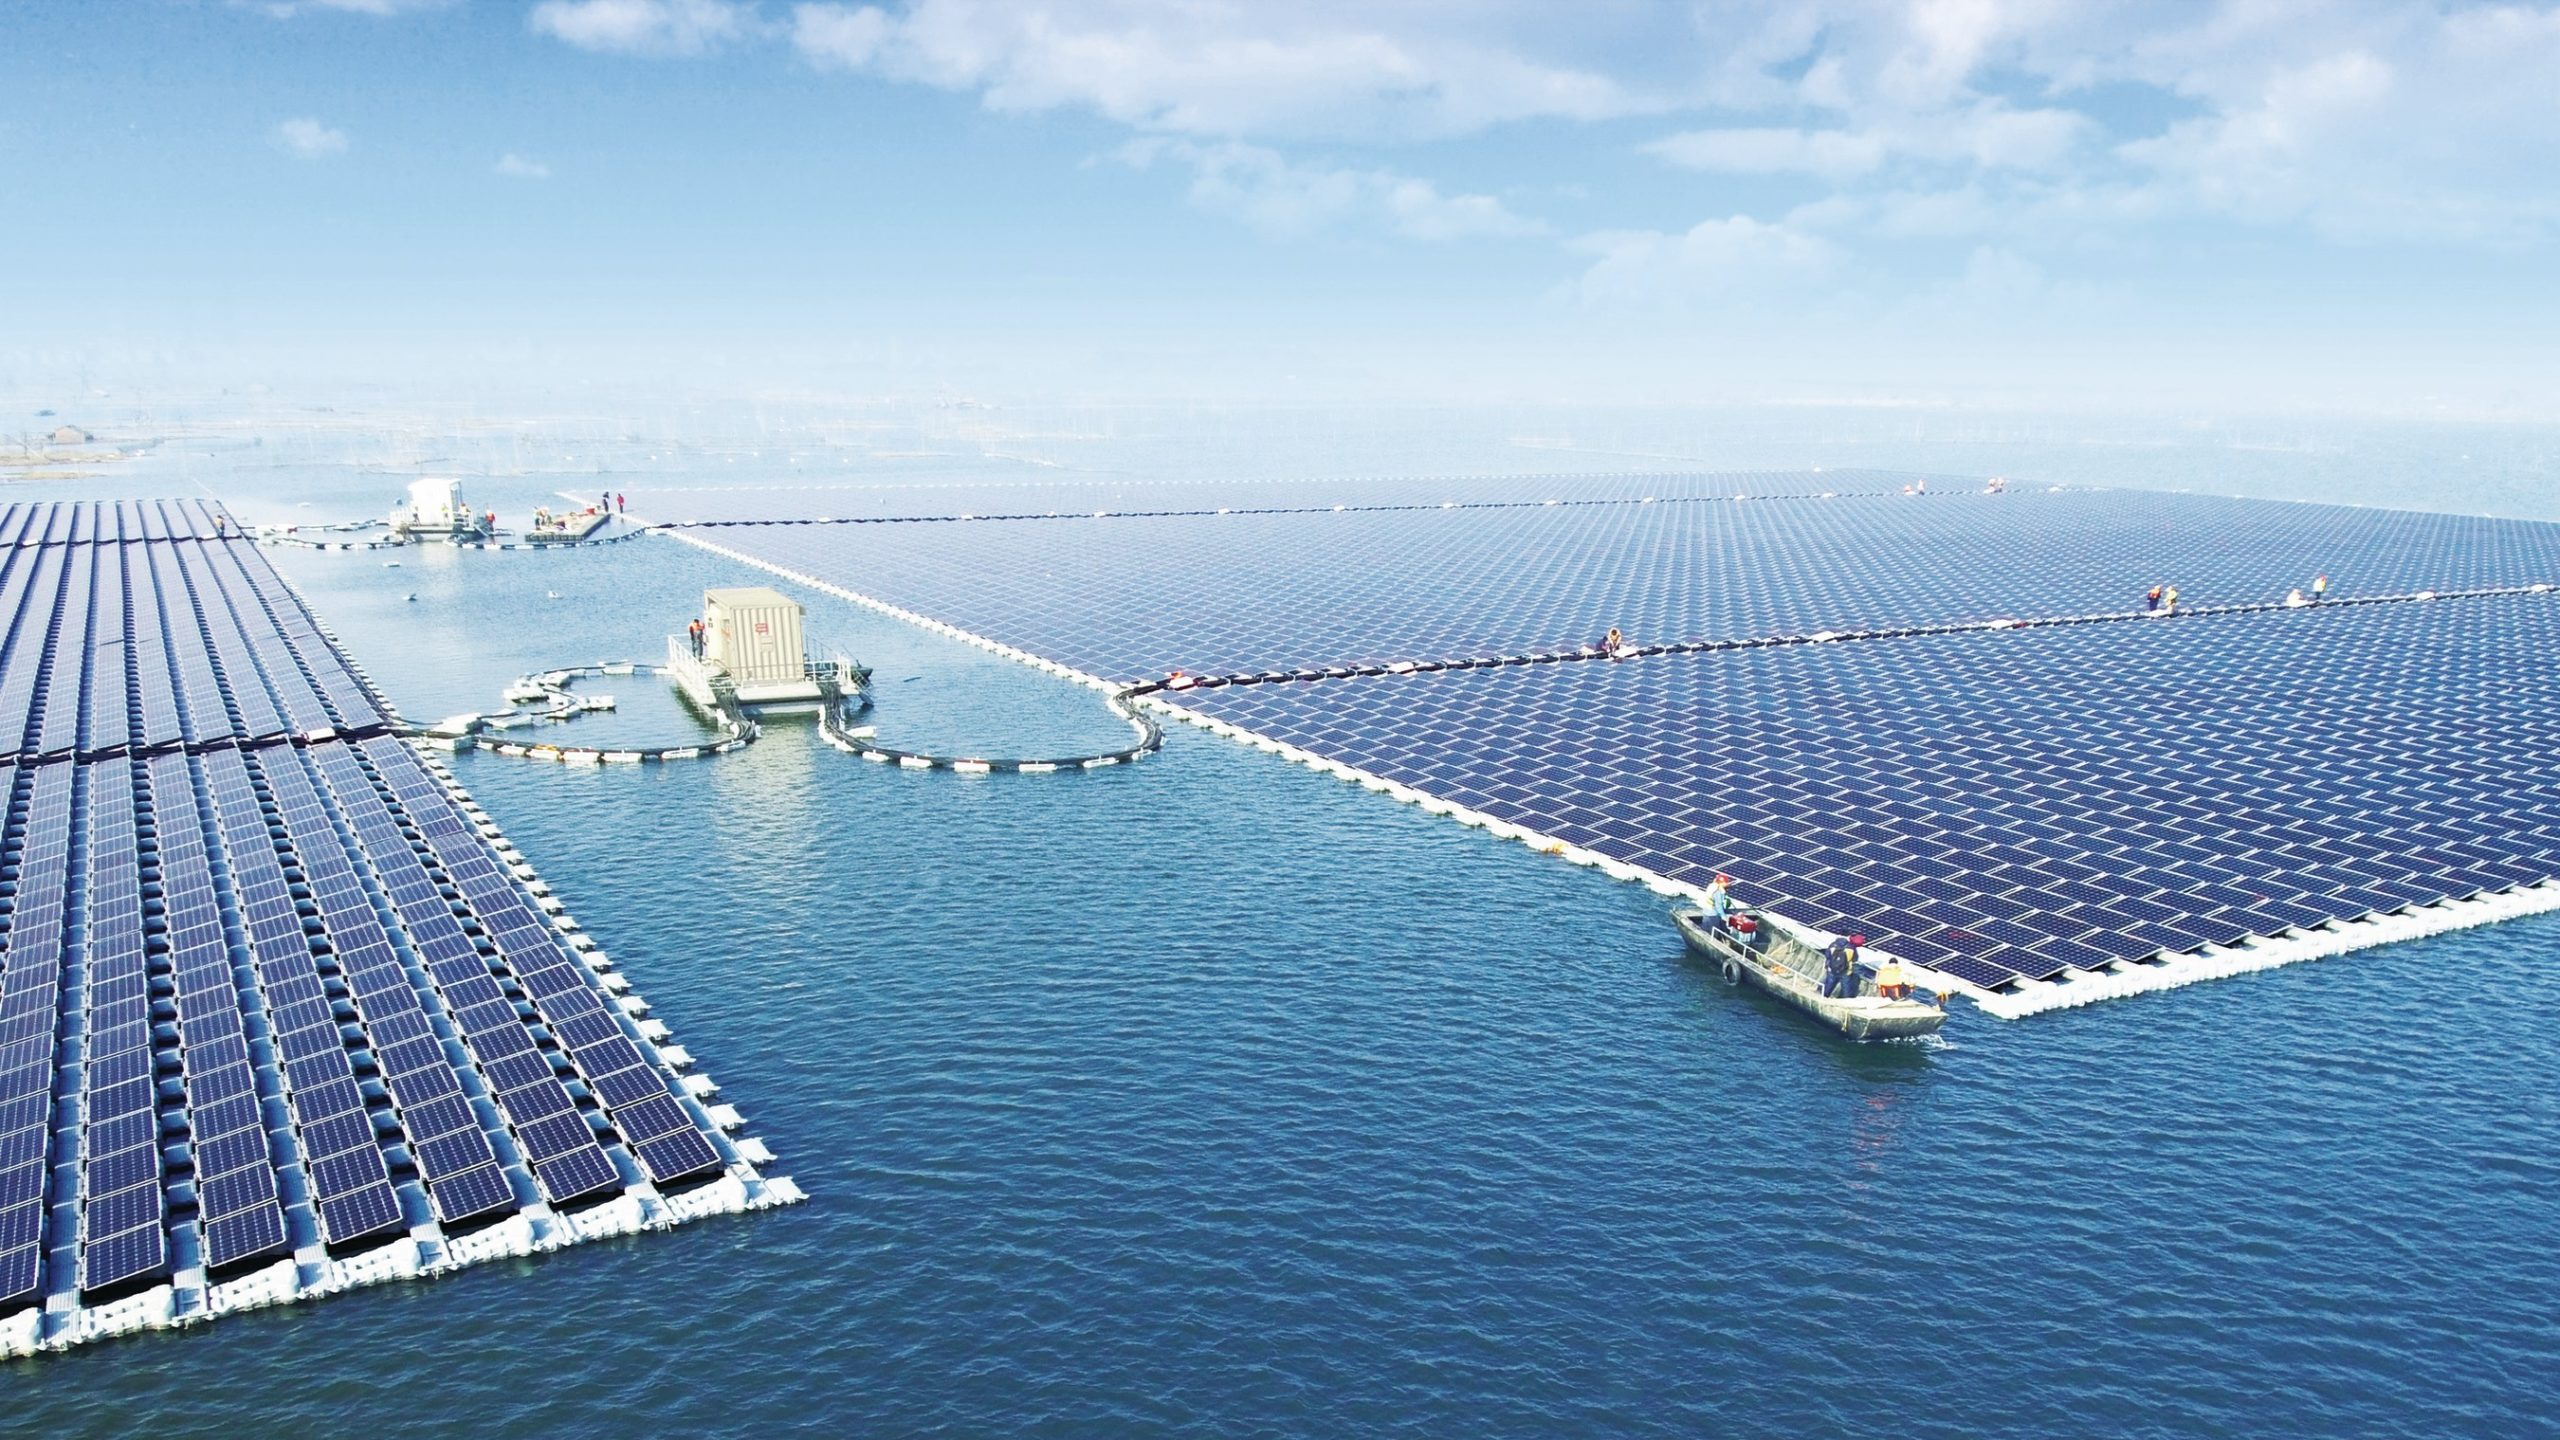 Sungrow Power Supply Co has said the largest floating PV power plant with a capacity of 40MW had been grid connected on former flooded coal mining region in Huainan, south Anhui province, China. Image: Sungrow